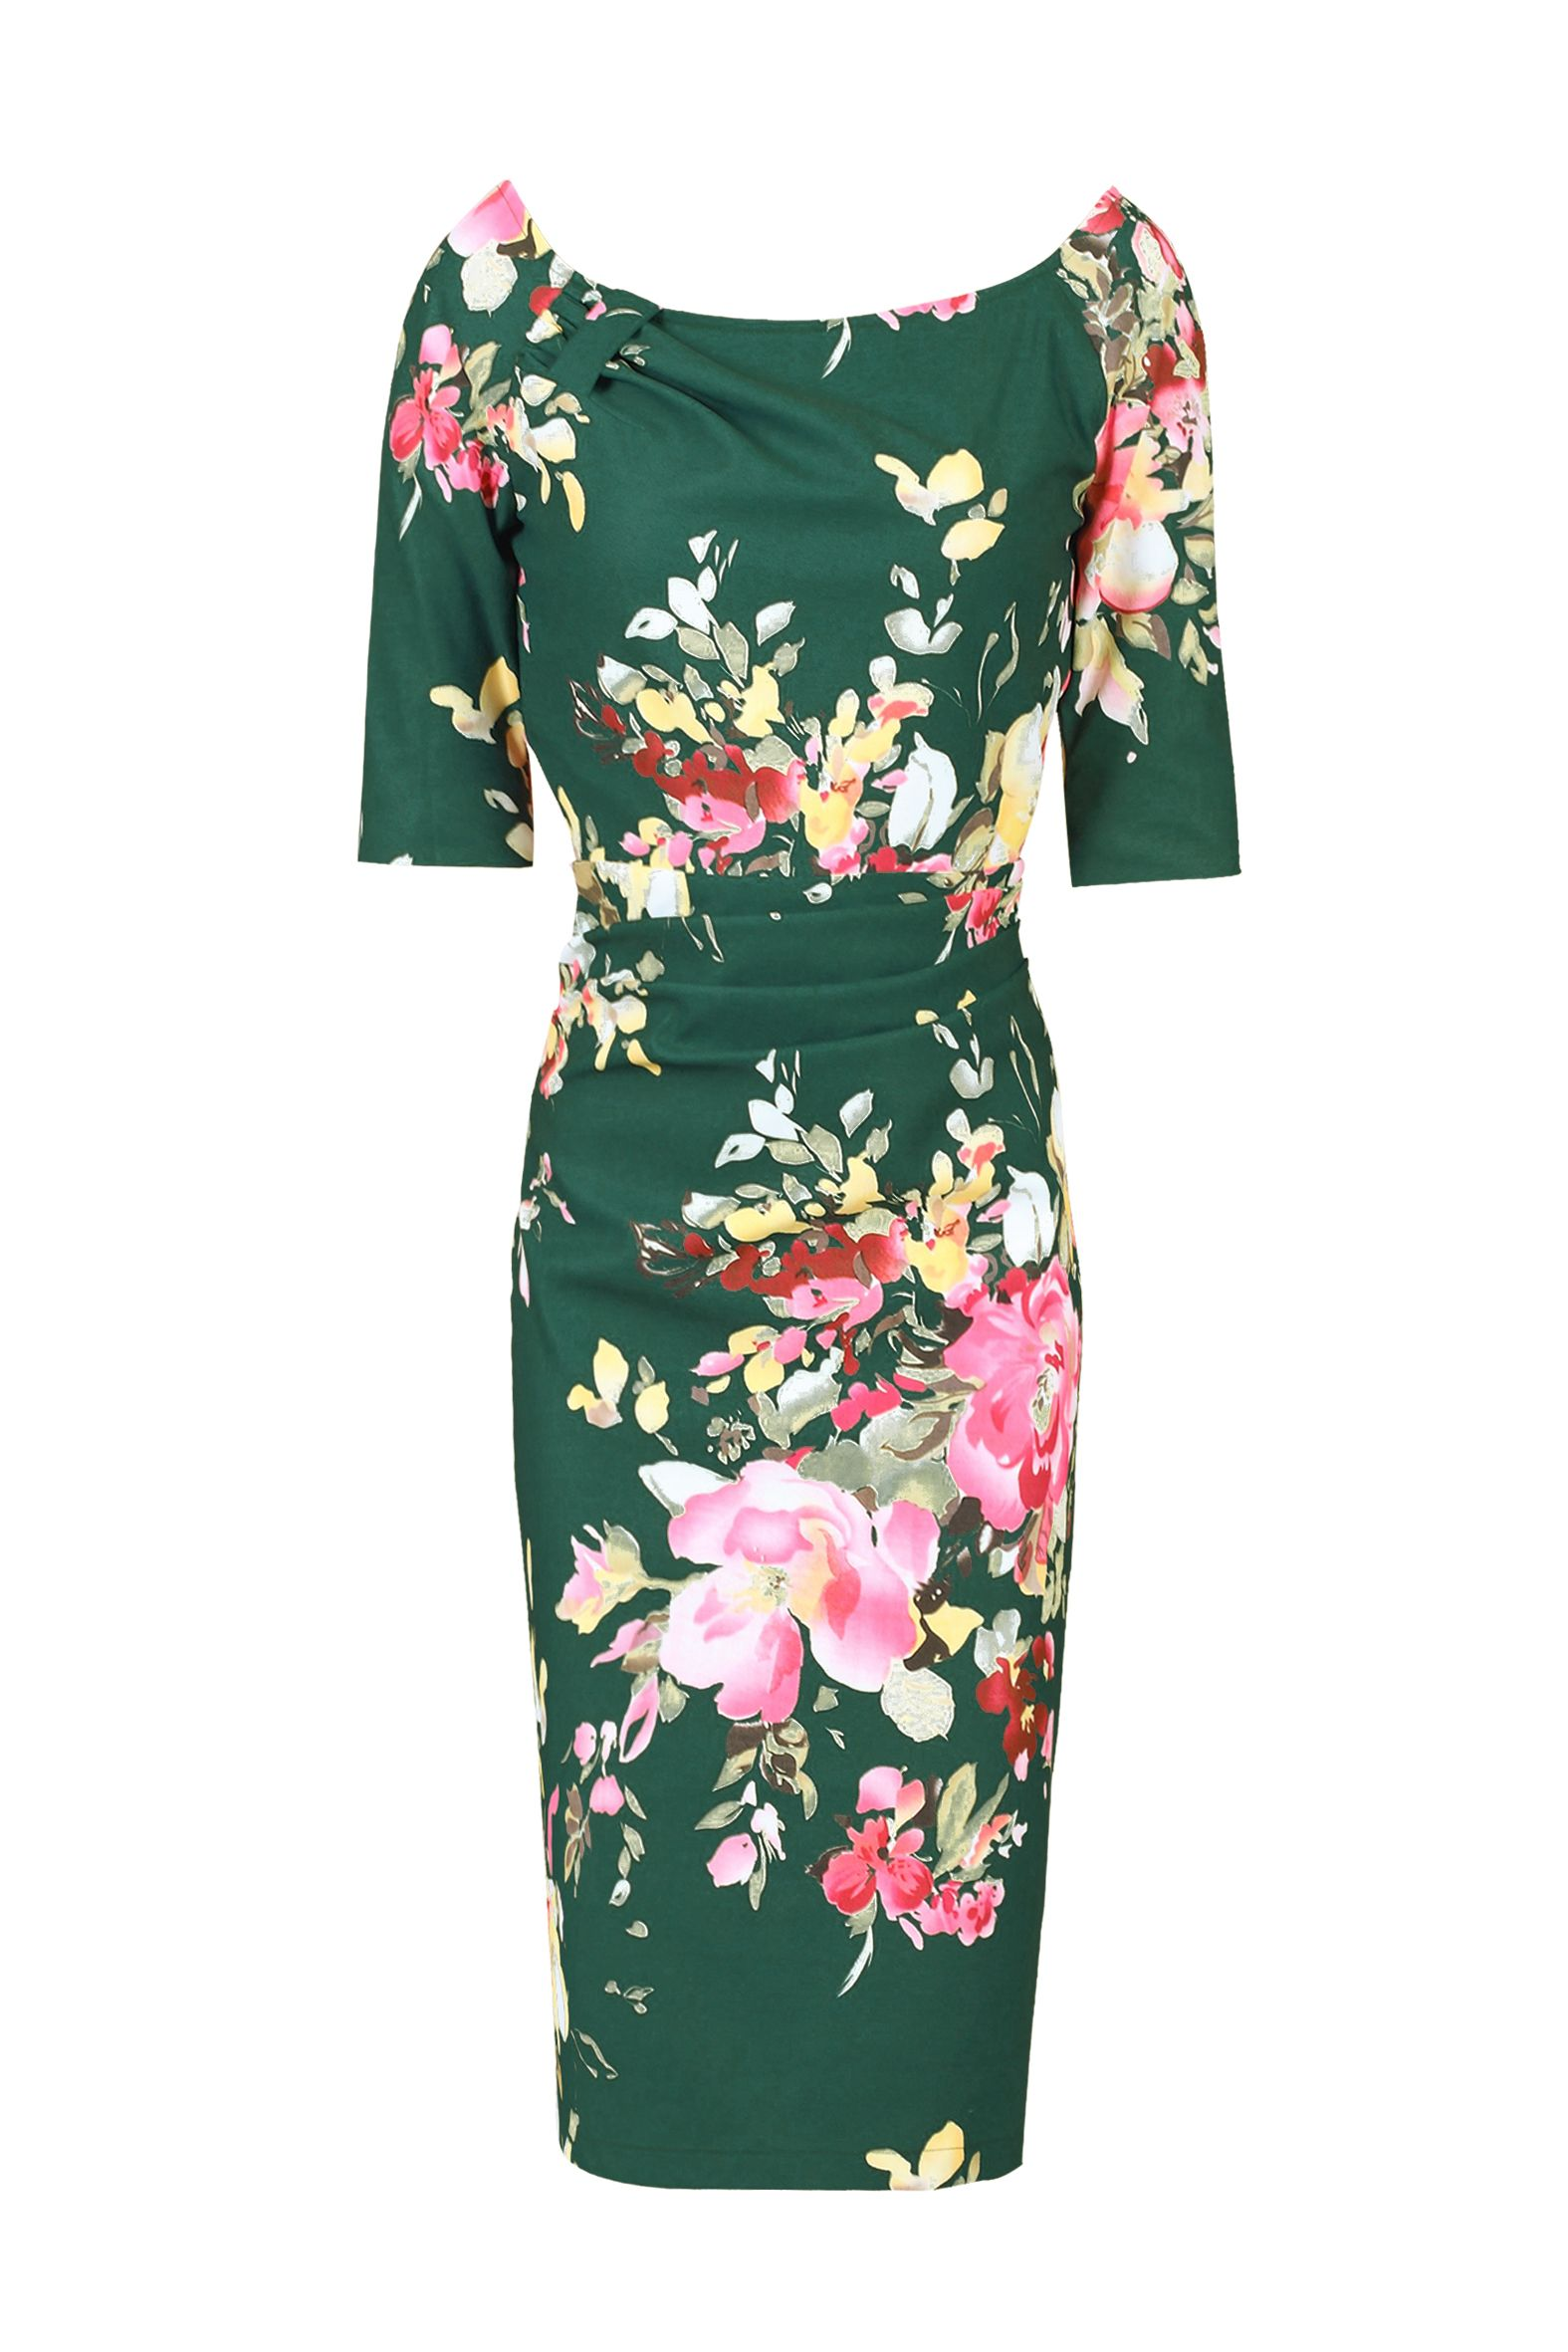 Jolie Moi Retro Floral Half Sleeve Ruched Dress, Dark Green